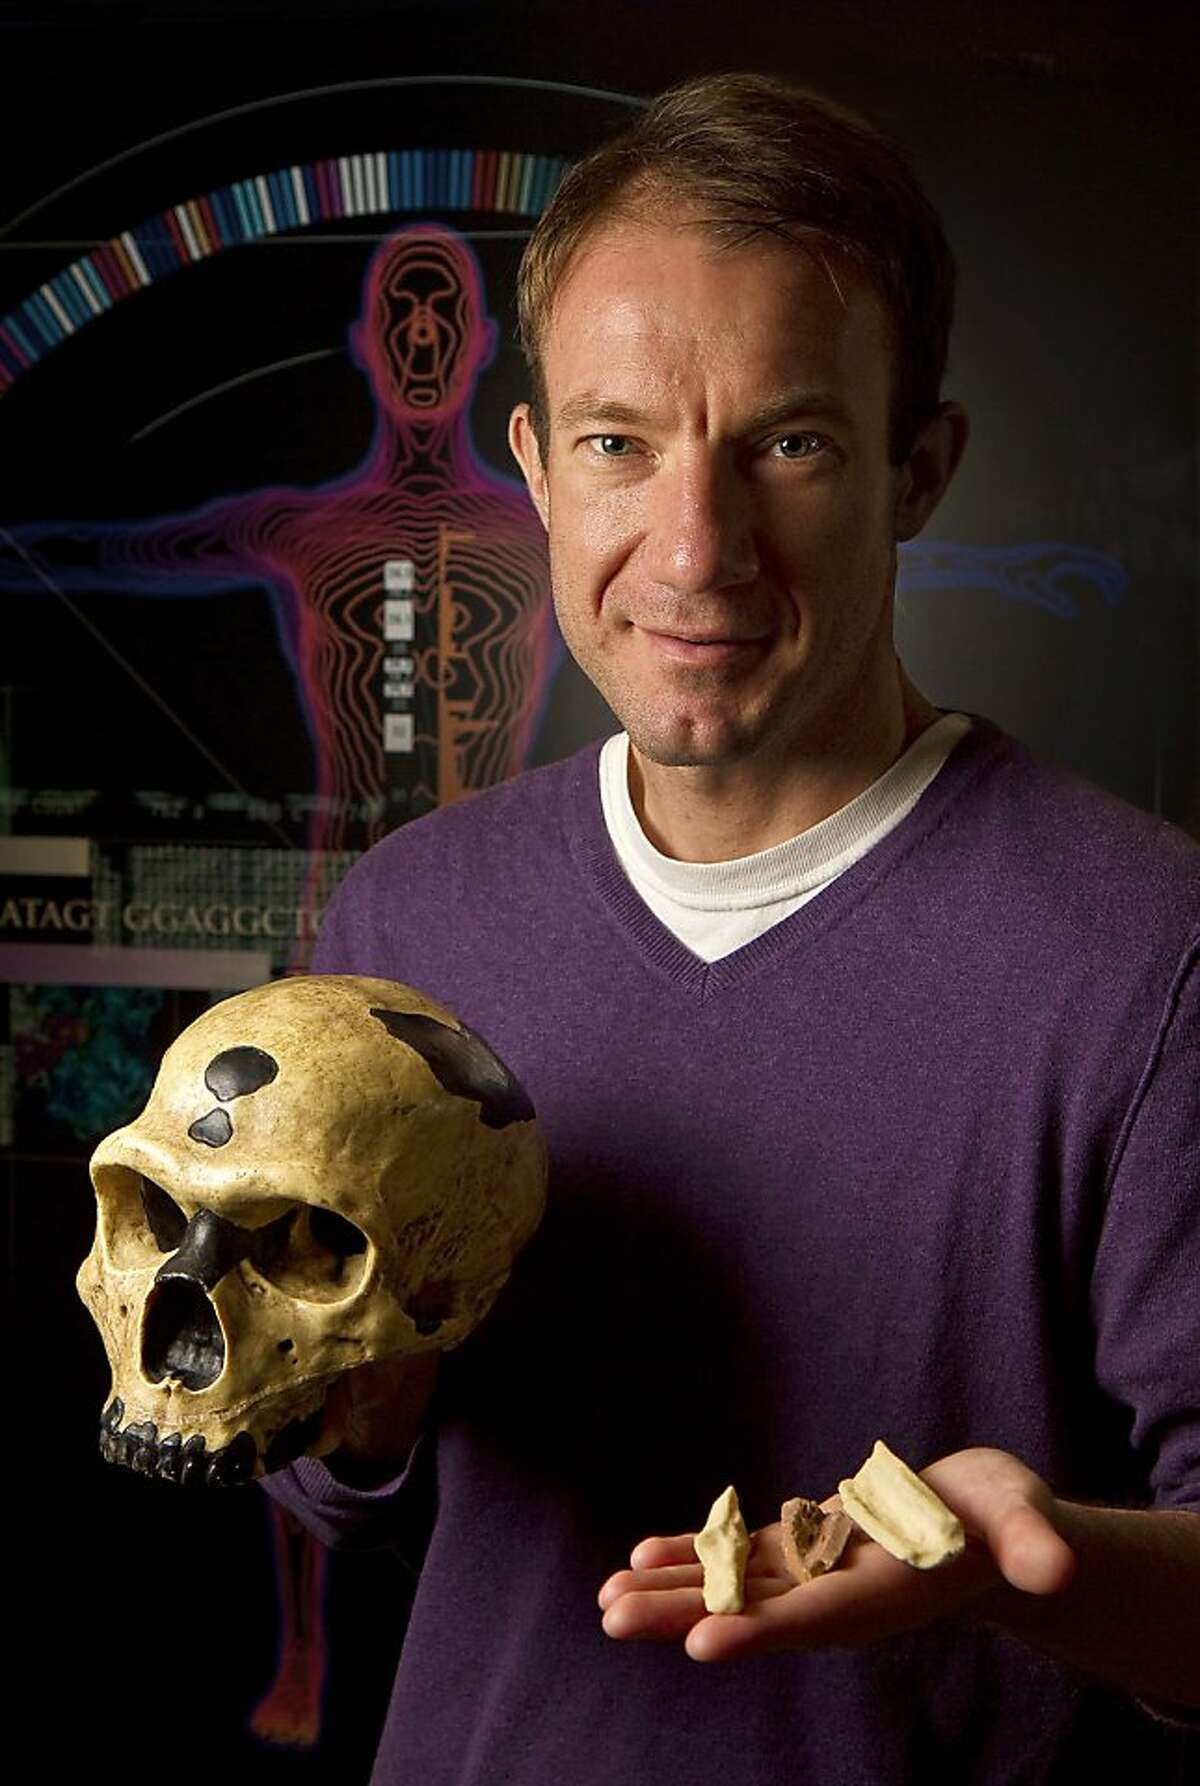 This undated handout photo provided by the journal Science shows University of California Santa Cruz professor of biomolecular engineering Ed Green holding replicas of the bones, and a skull, from which Neanderthal DNA was extracted for genome sequencing. (AP Photo/Jim MacKenzie, UC-Santa Cruz) Ran on: 05-07-2010 UC Santa Cruz Professor Richard E. Green holds replicas of the Neanderthal bones DNA was extracted from. Ran on: 05-07-2010 UC Santa Cruz Professor Richard E. Green holds replicas of the Neanderthal bones DNA was extracted from.